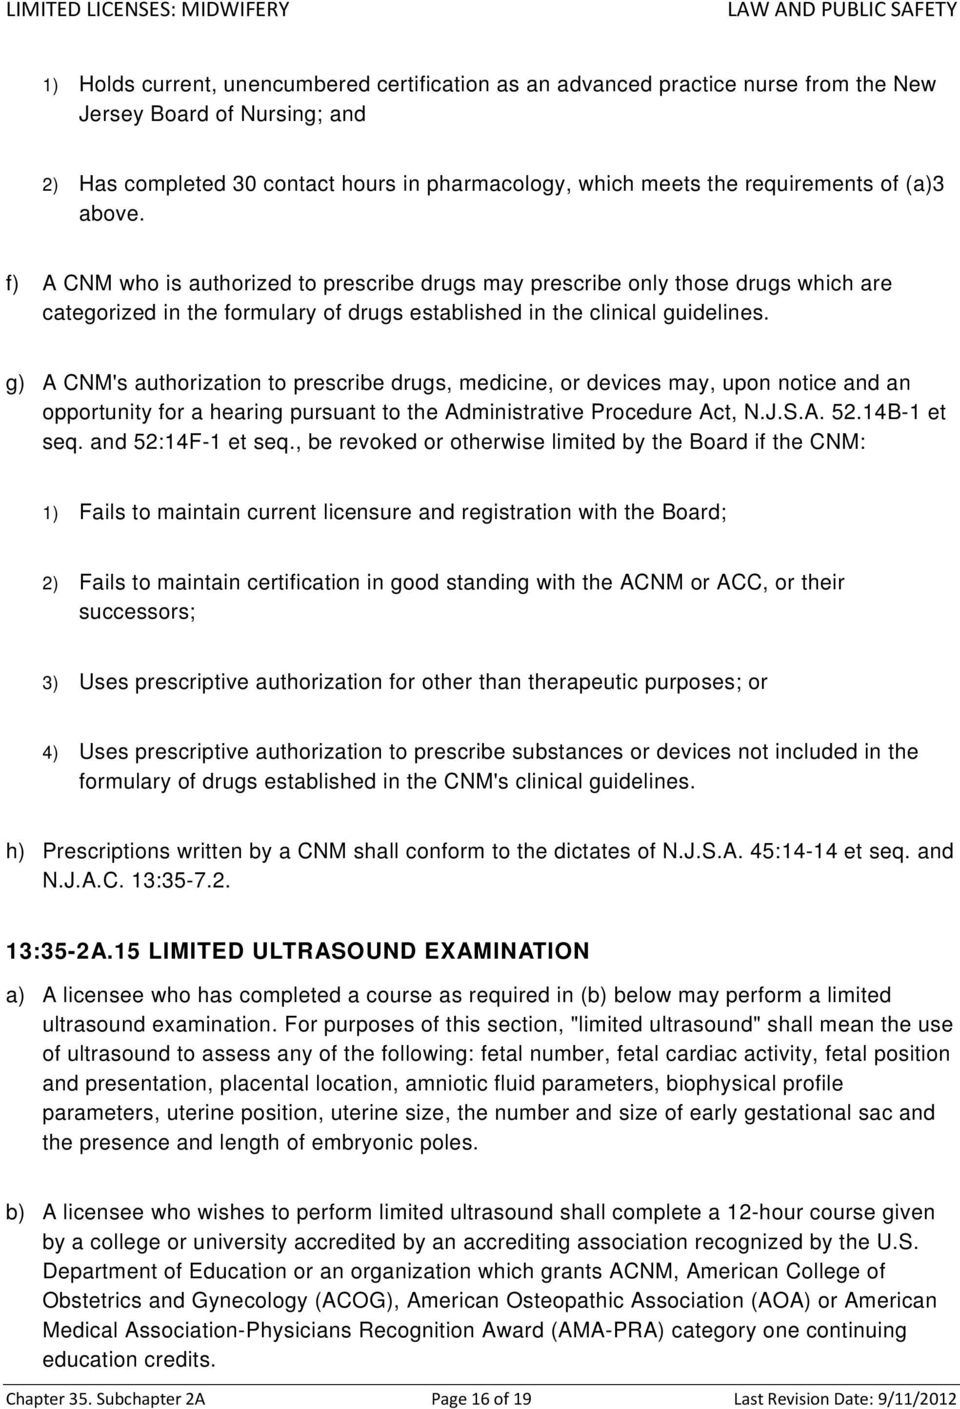 g) A CNM's authorization to prescribe drugs, medicine, or devices may, upon notice and an opportunity for a hearing pursuant to the Administrative Procedure Act, N.J.S.A. 52.14B-1 et seq.